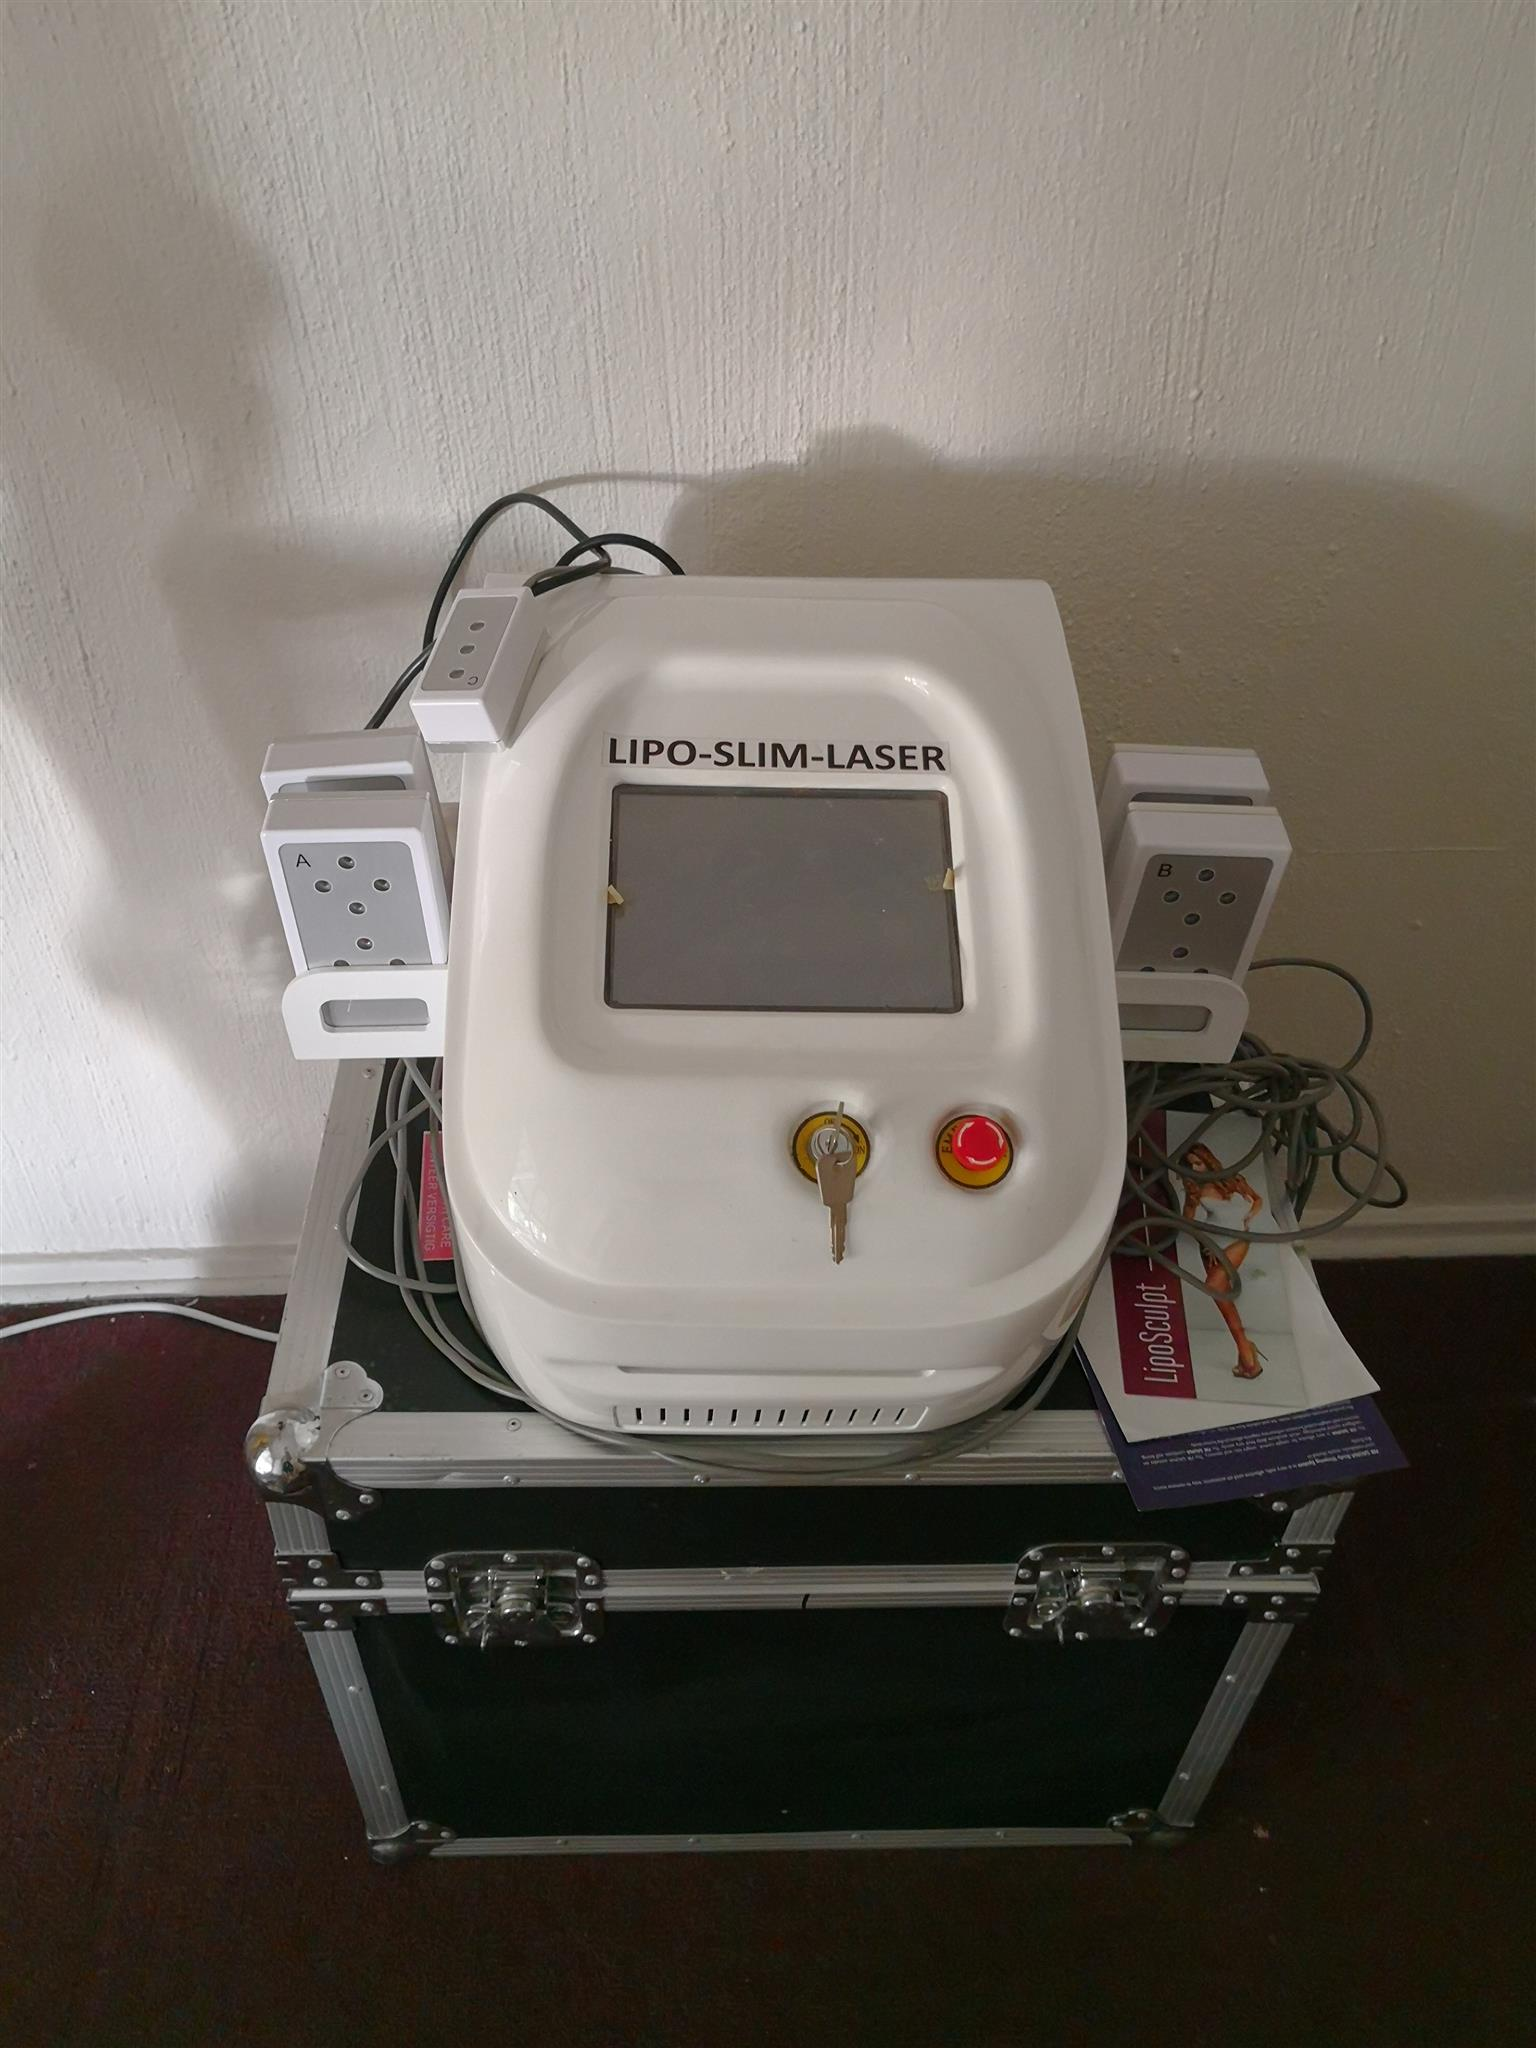 Lazer liposuction machine an vibranting machine